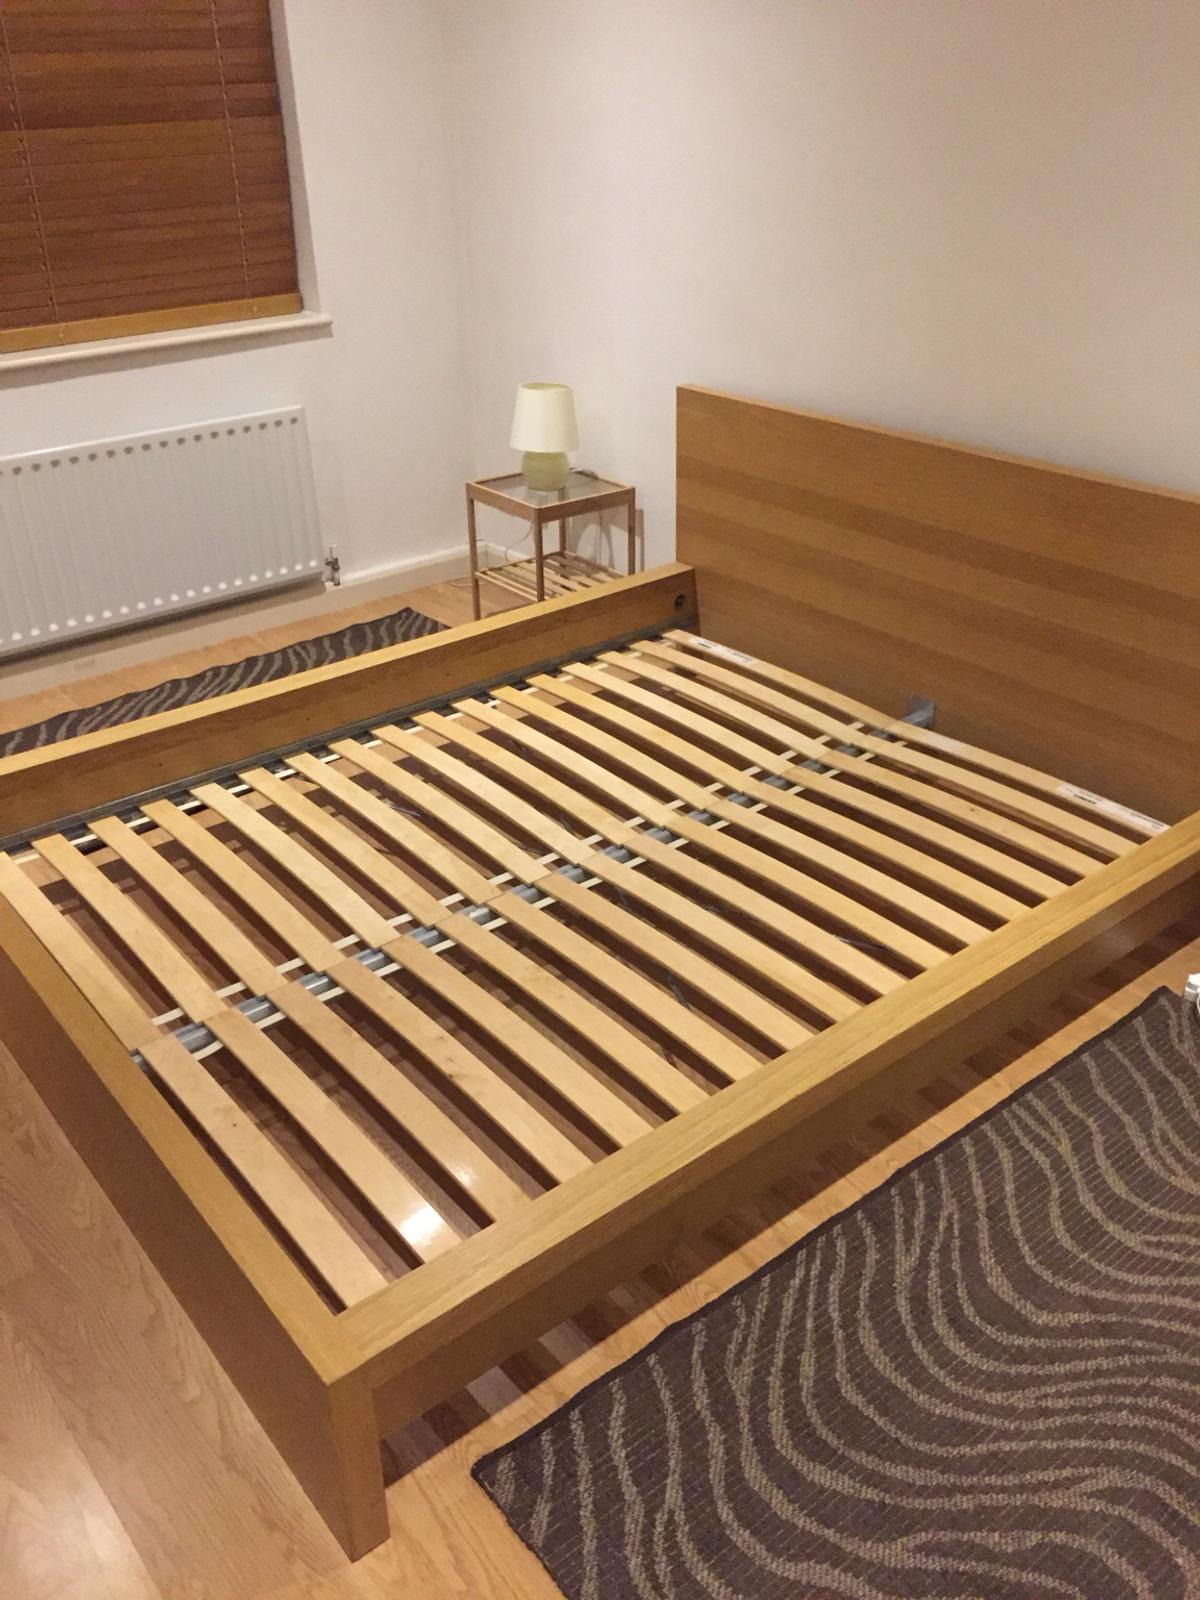 European King Size Ikea Malm Bed Frame Only In Sw18 London For 80 00 For Sale Shpock